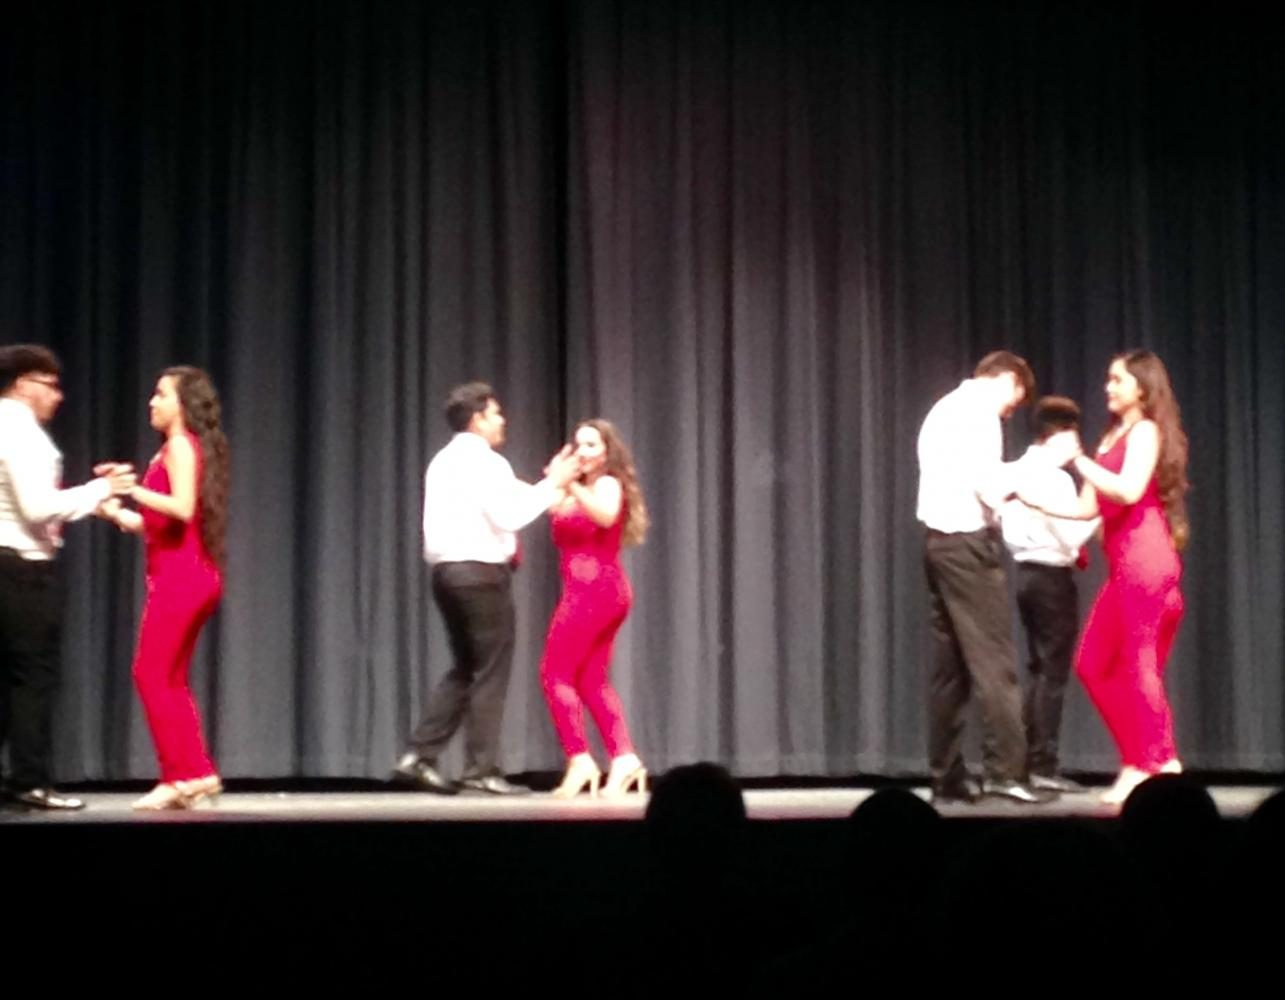 he+Hispanic+Heritage+Club+performs+their+dance+sequence%2C+titled+%E2%80%9CEl+Sabor+Latino.%E2%80%9D